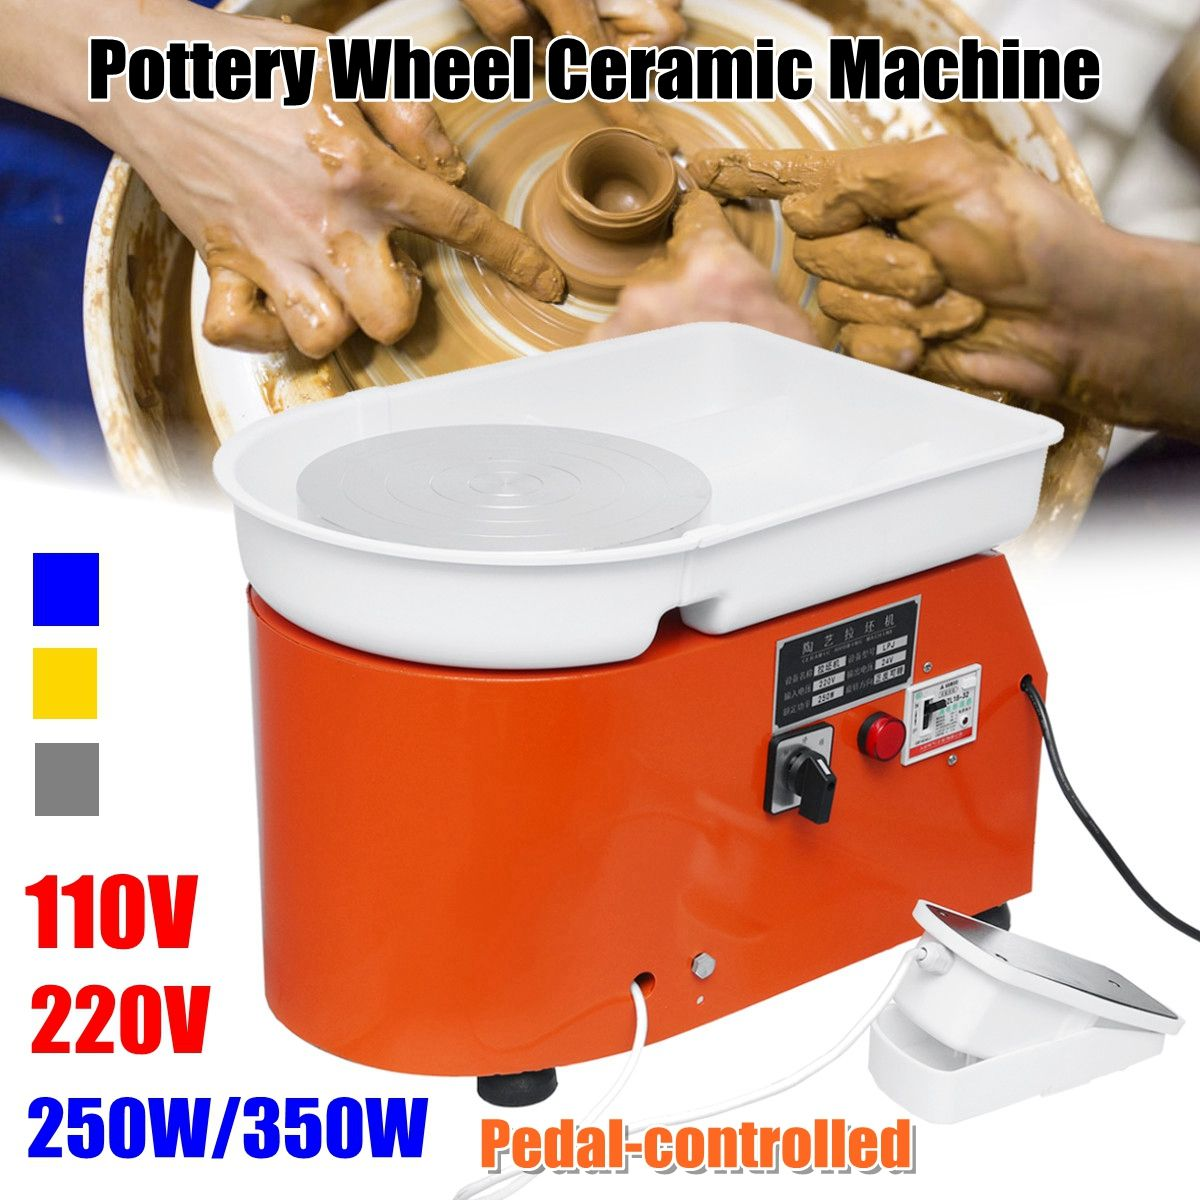 250W/350W Electric Tours Wheel Pottery Machine Ceramic Clay Potter Art For Ceramic Work Ceramics 110V/220V